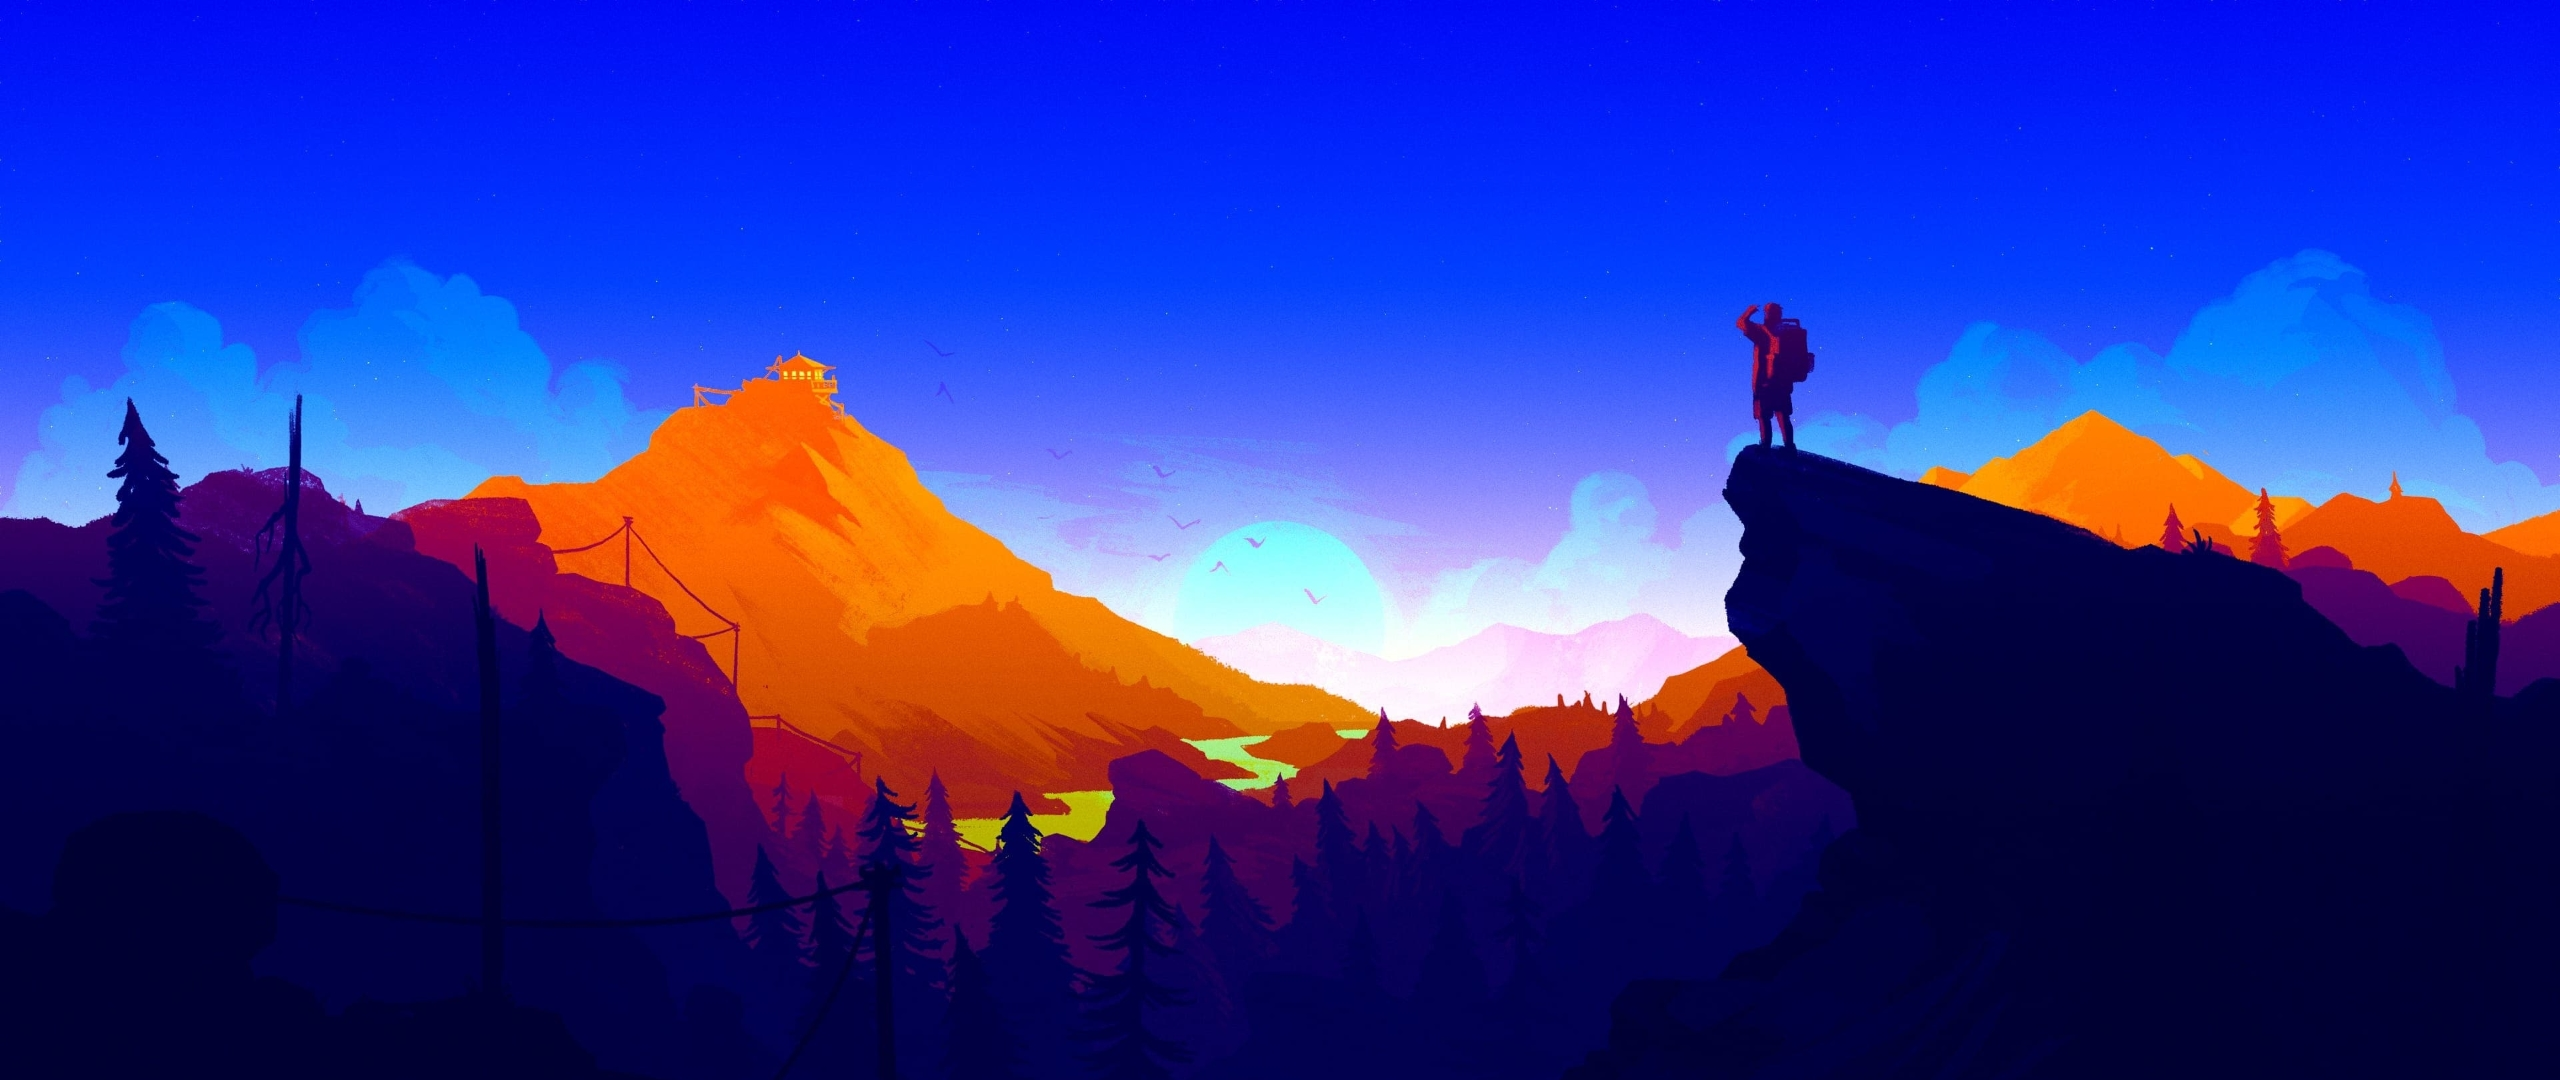 Firewatch 2017 hd 4k wallpaper - 1366x768 is 720p or 1080p ...